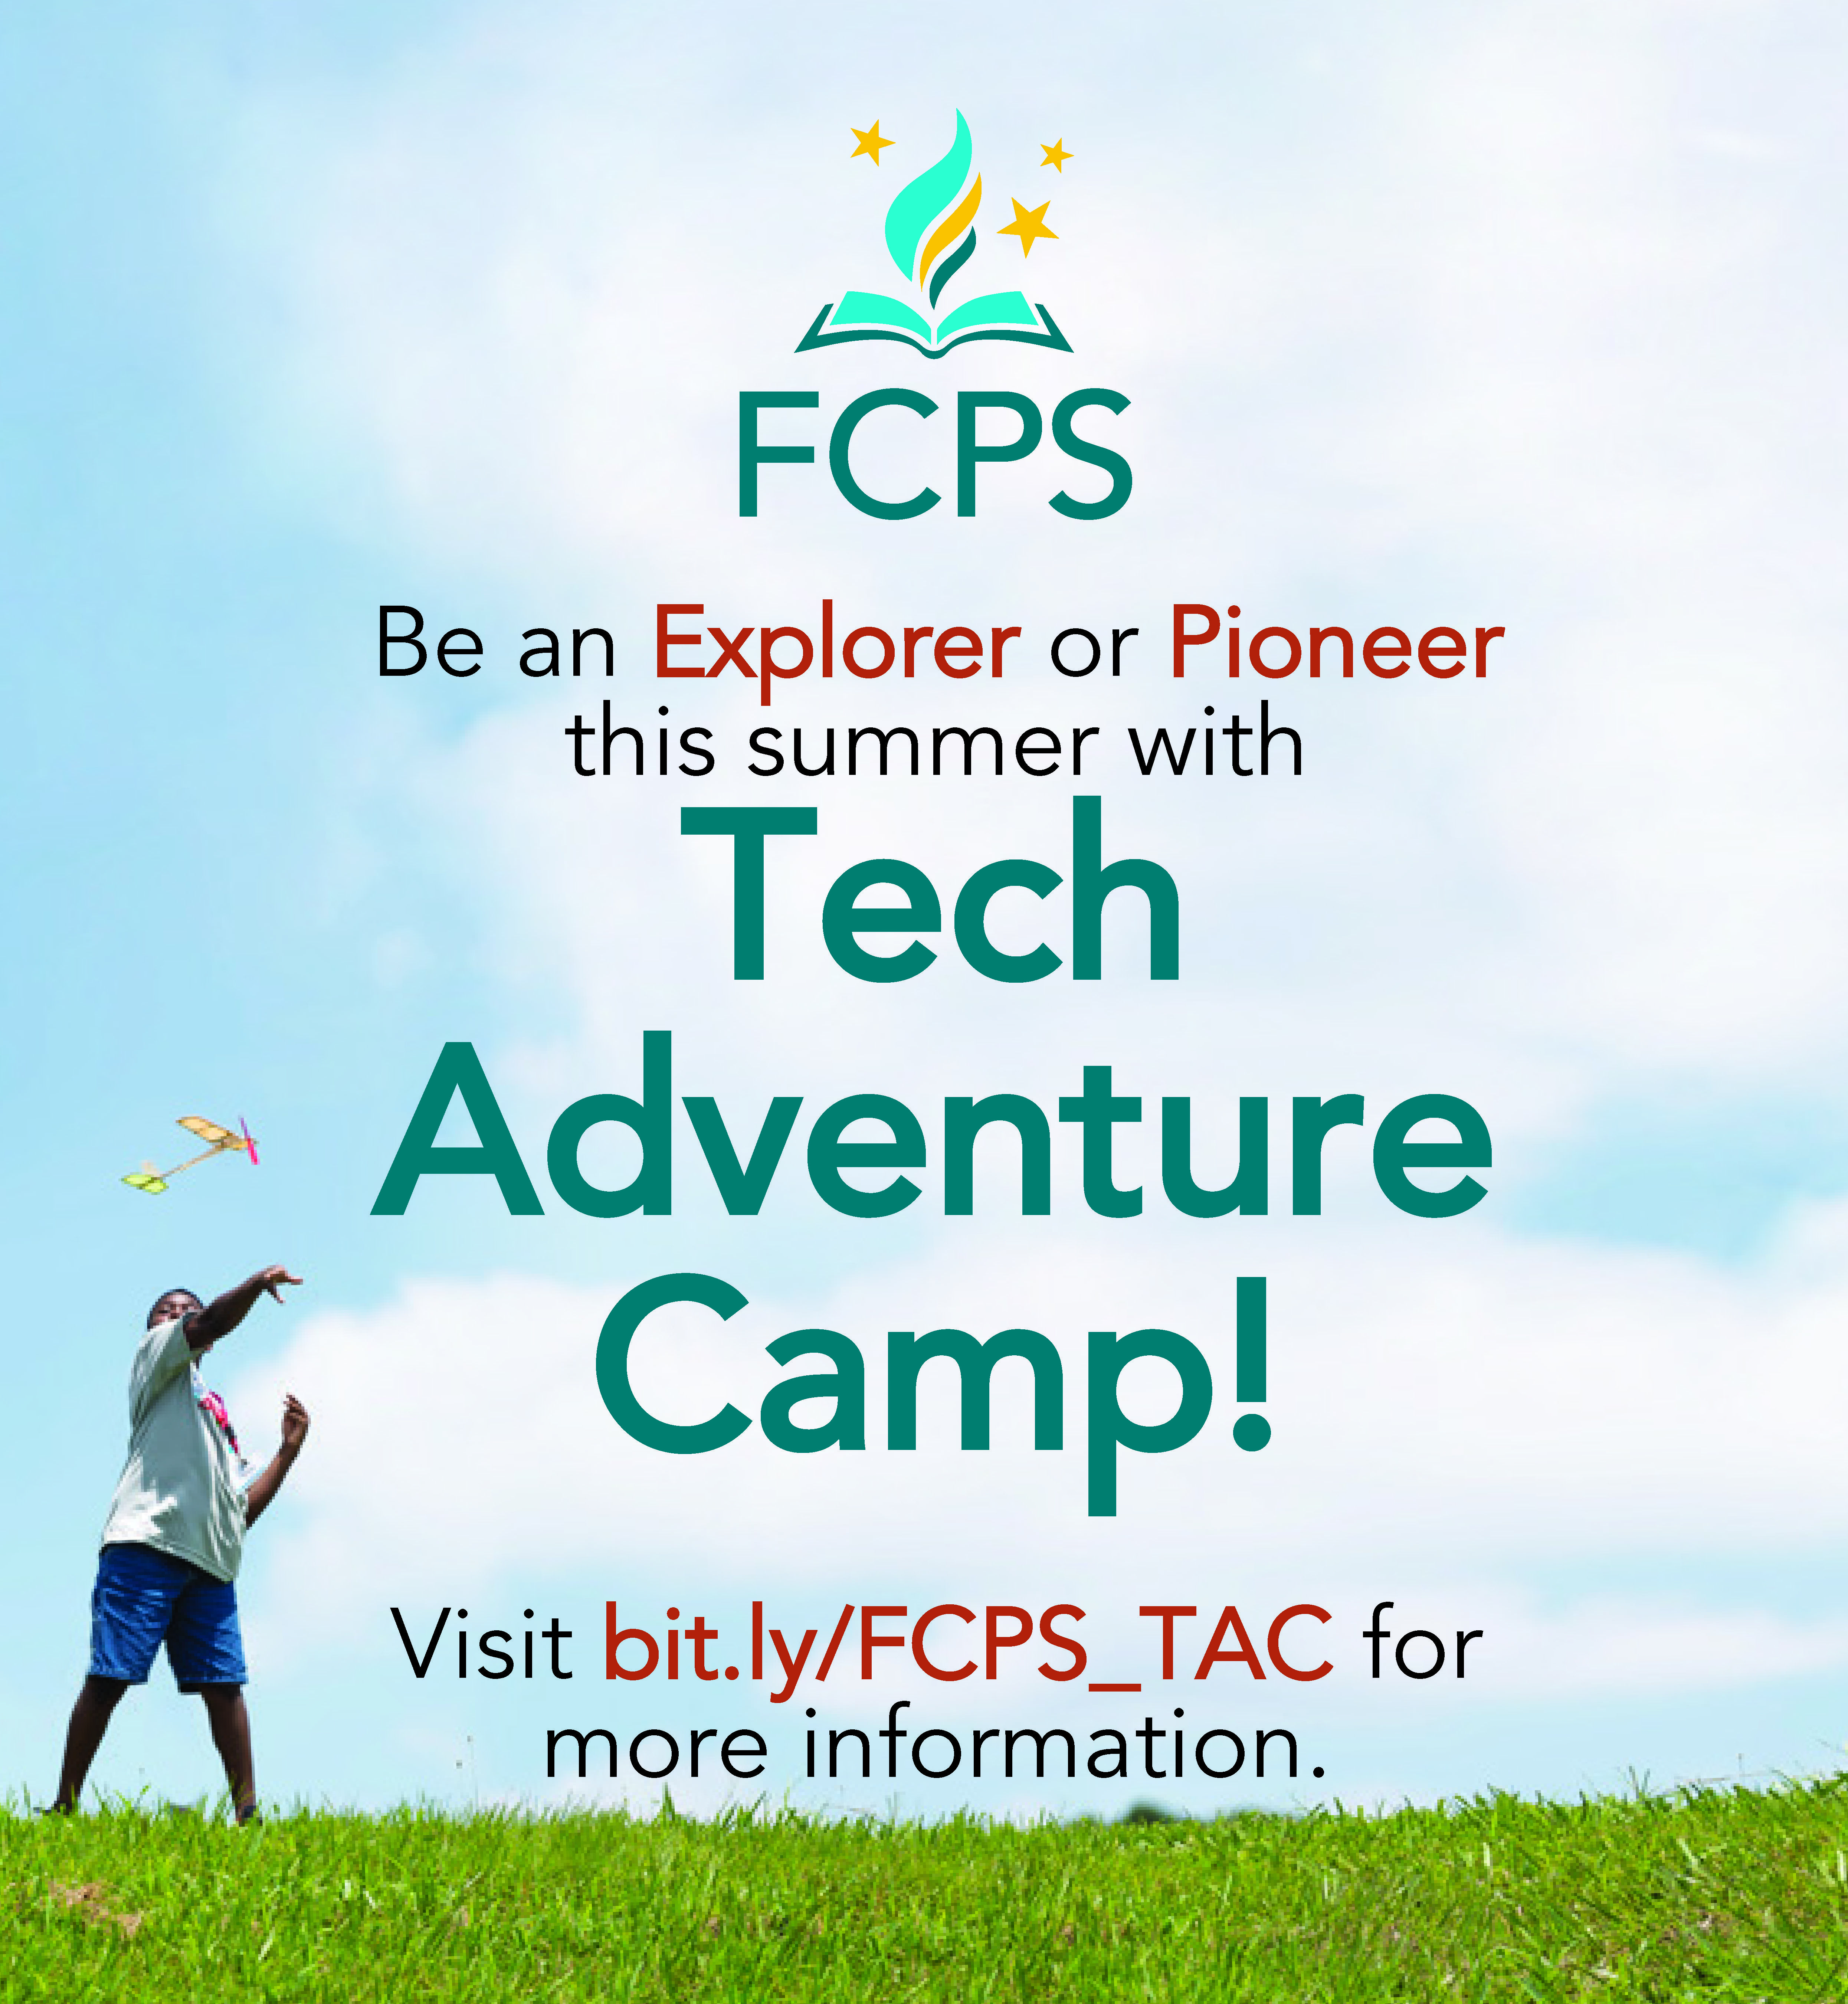 Tech Adventure Camp In 2020 Adventure Camping Summer Learning Programs Summer Learning